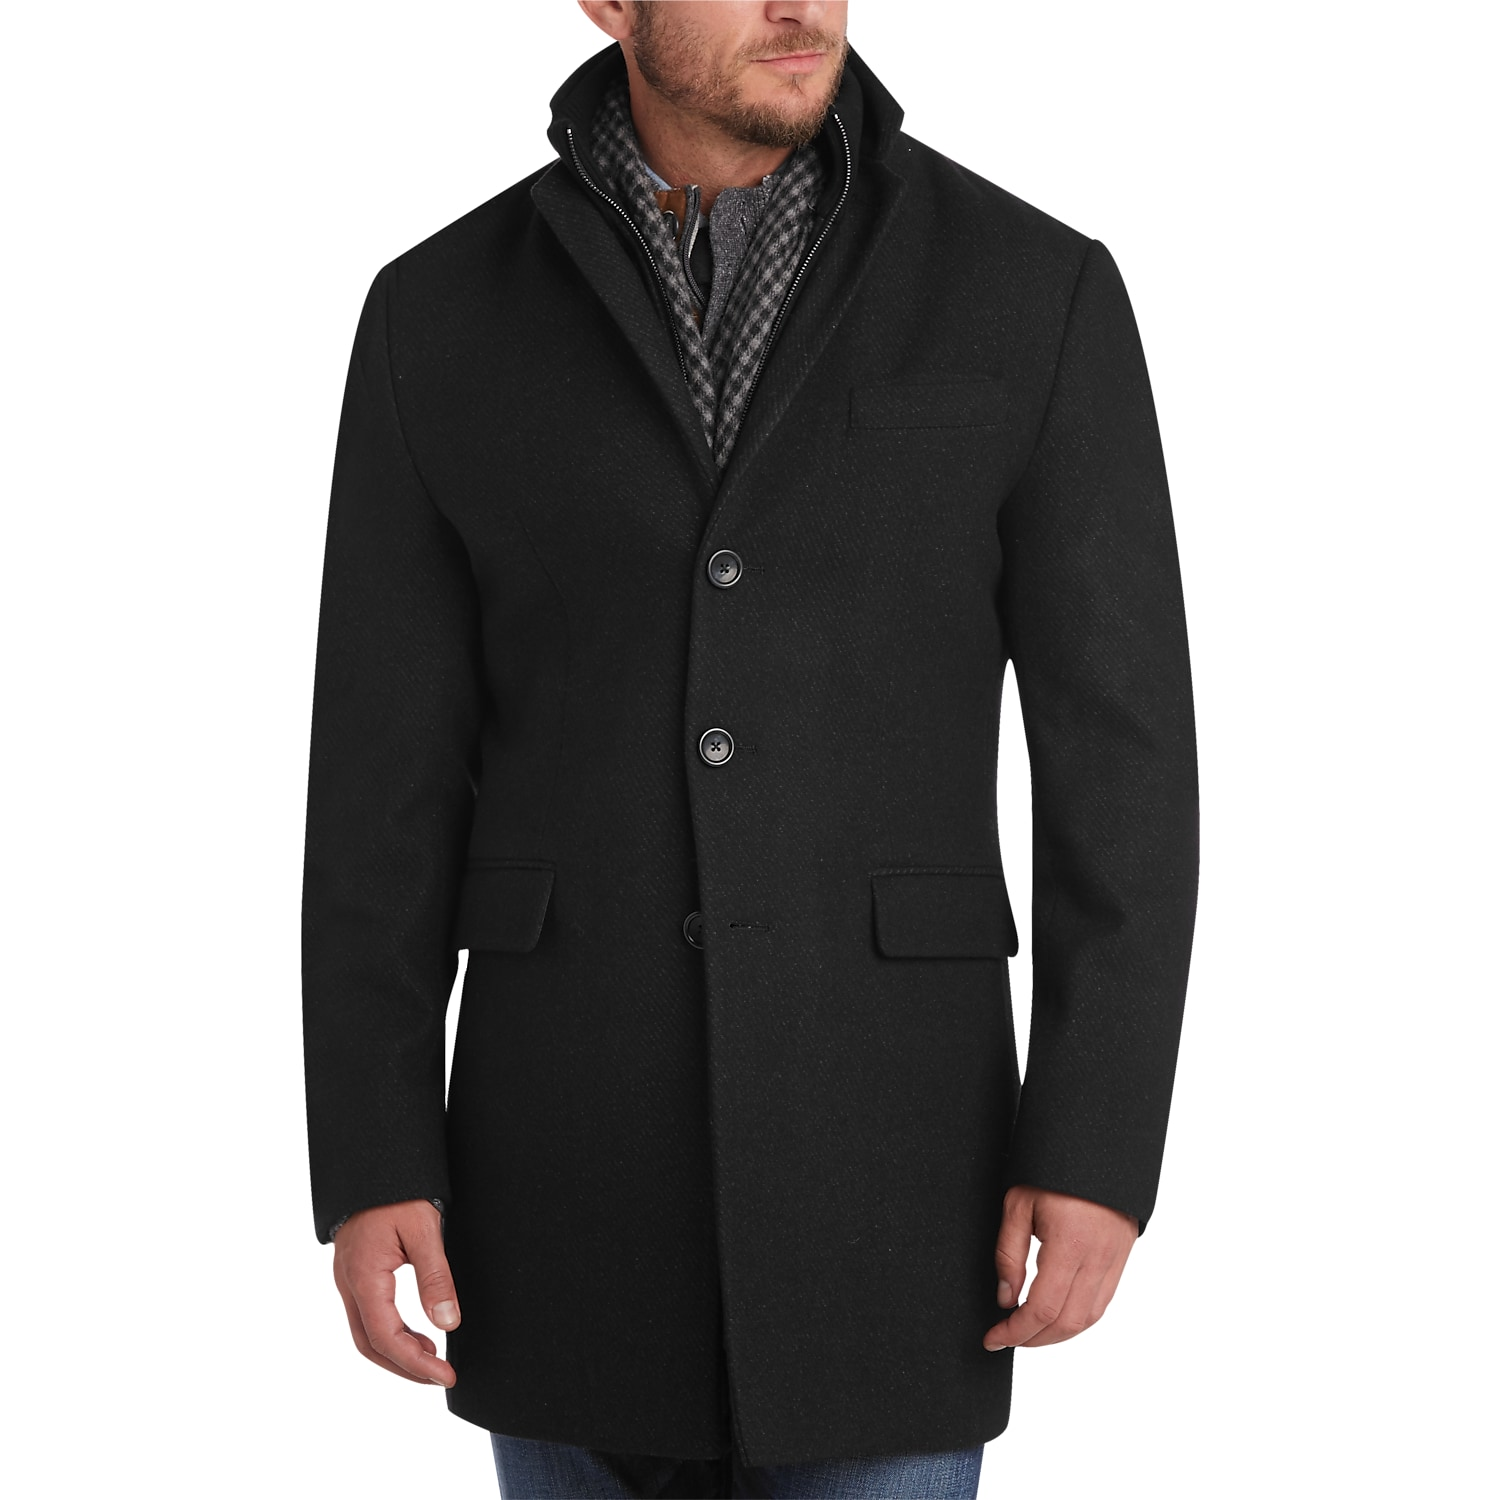 Jackets, Outerwear & Coats for Men | Men's Wearhouse